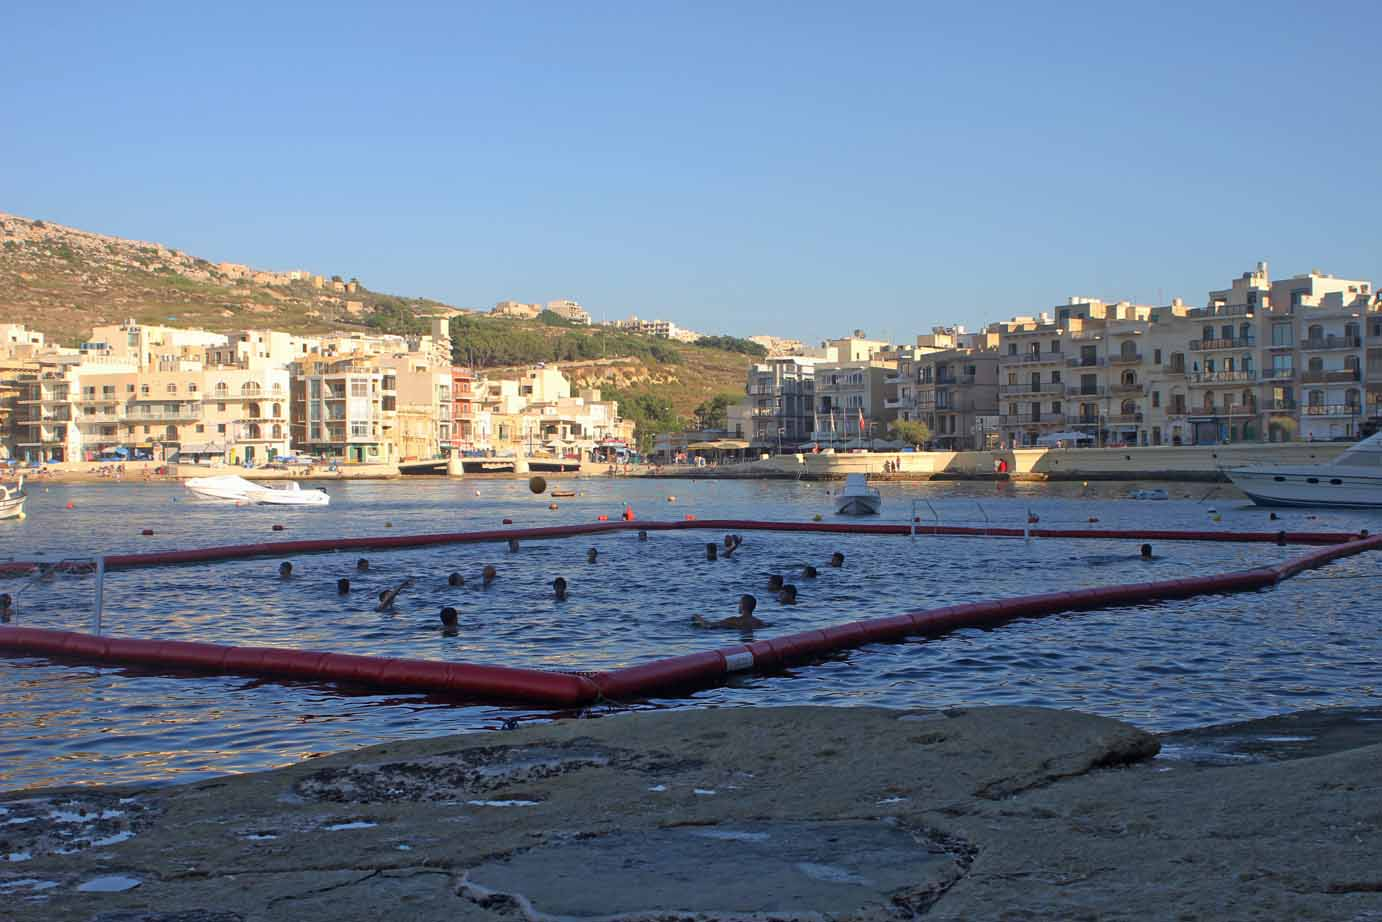 Boomswim in Malta for Waterpolo